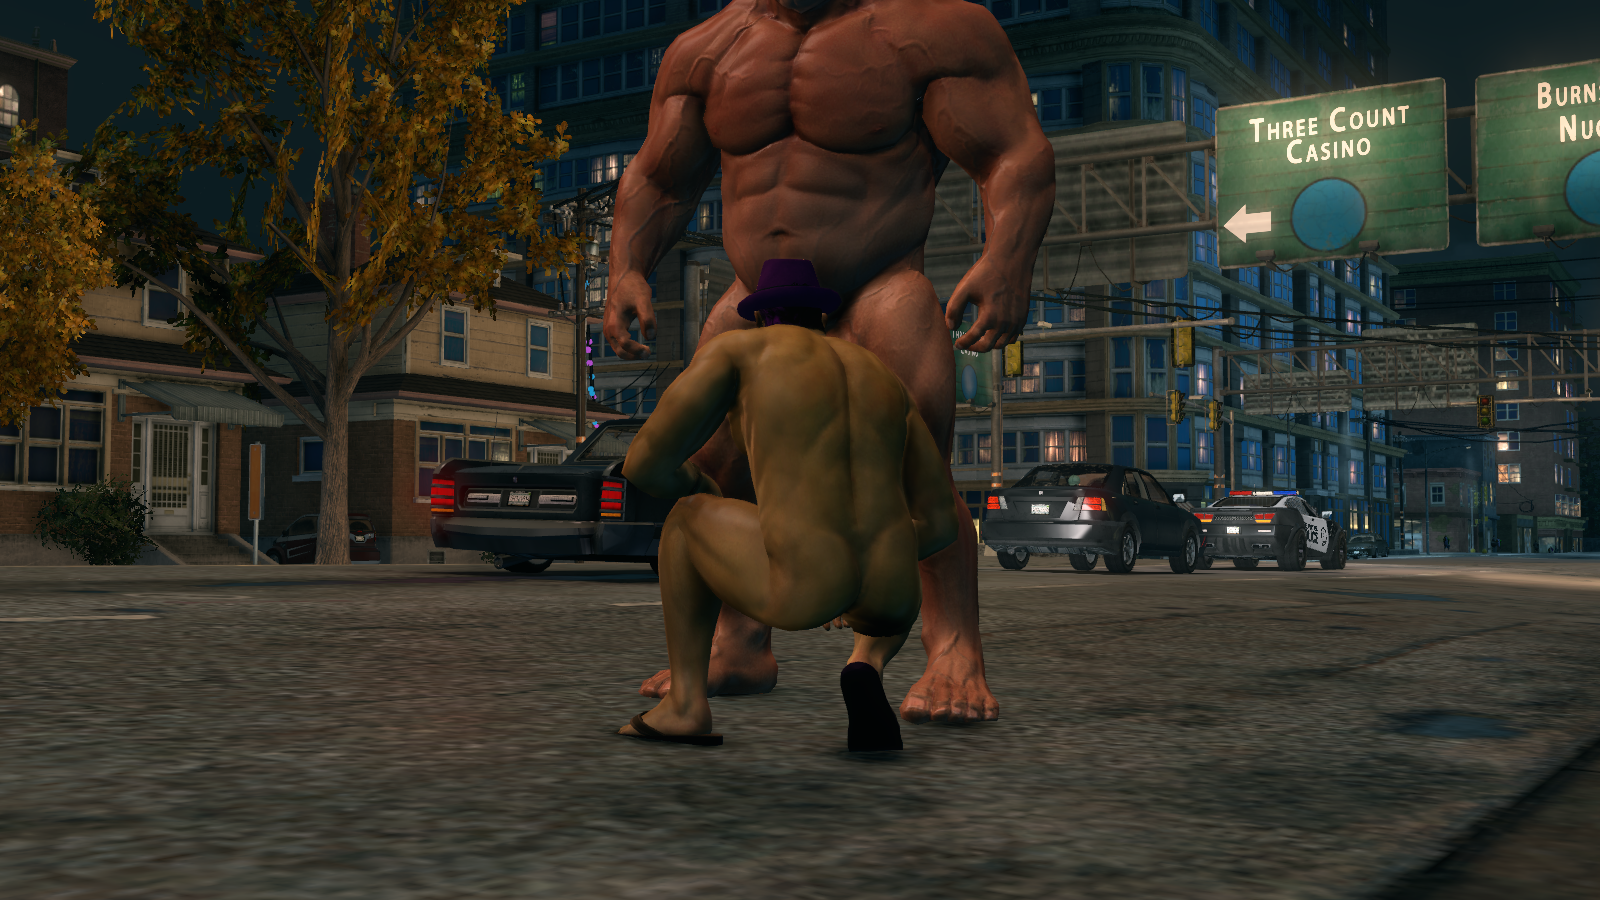 Download saints row 2 nude exploited image